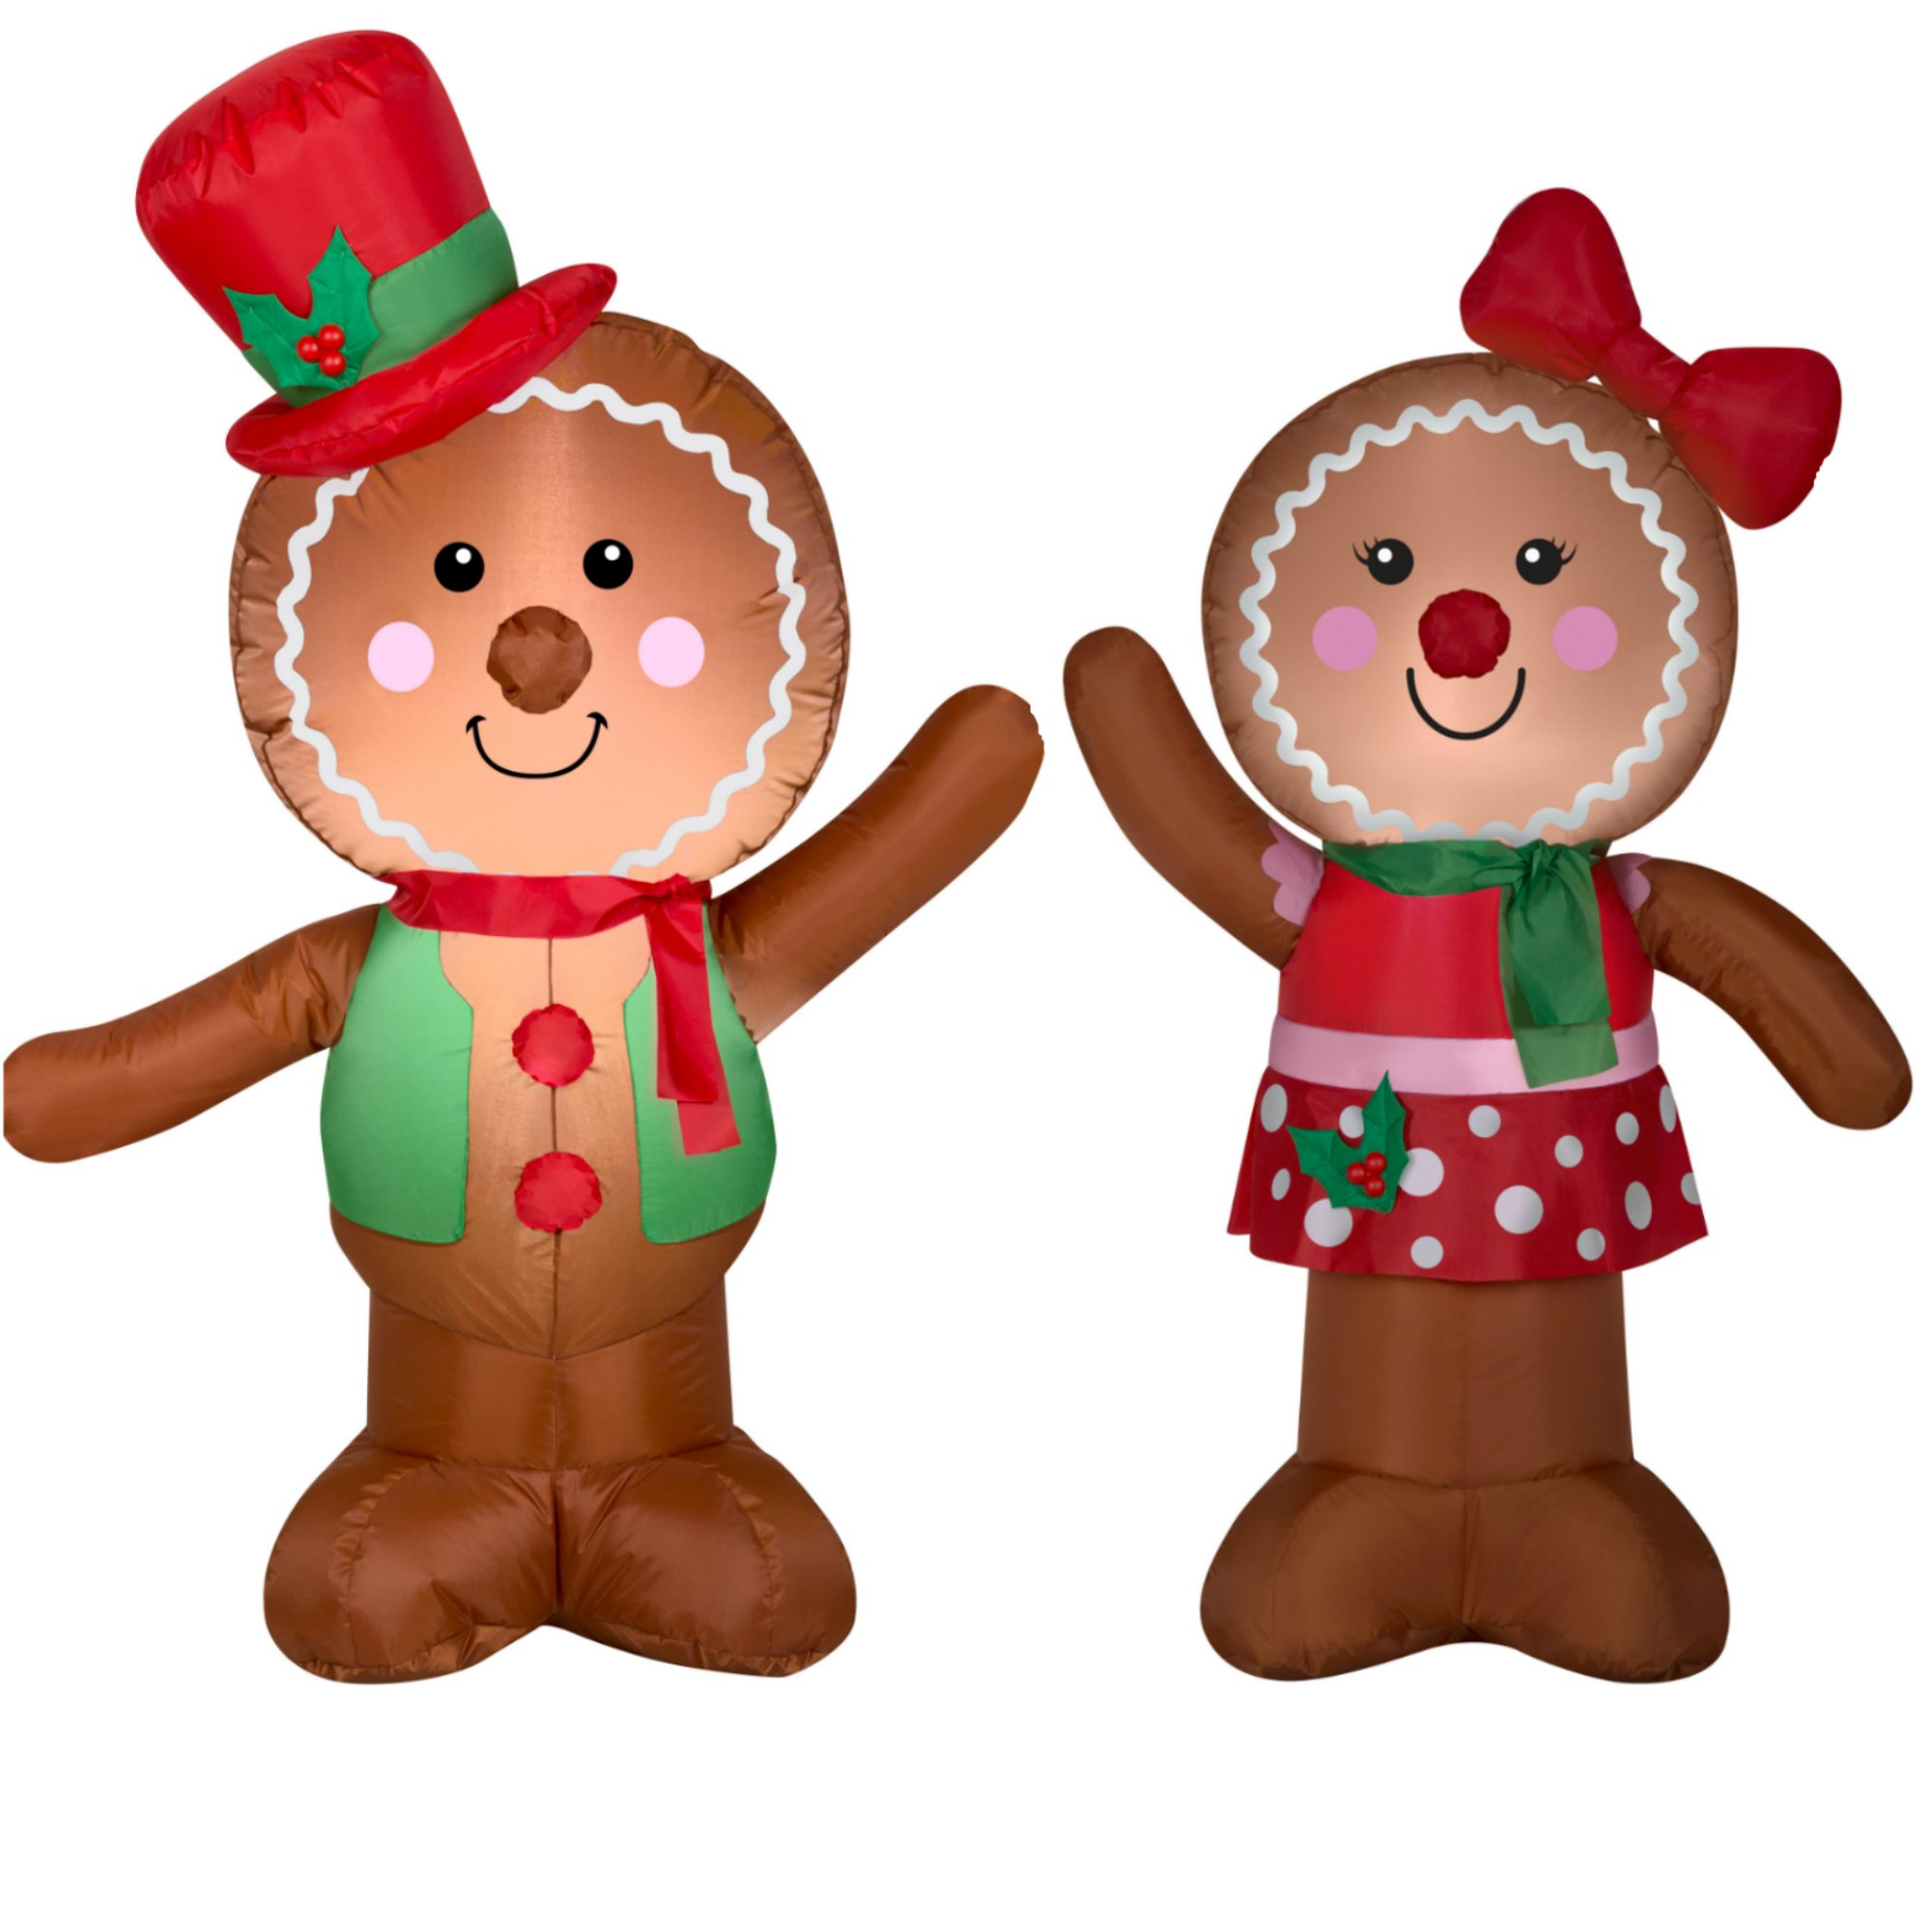 Airblown Inflatable Outdoor Christmas Characters - Gingerbread Man and Girl Bundle 2017